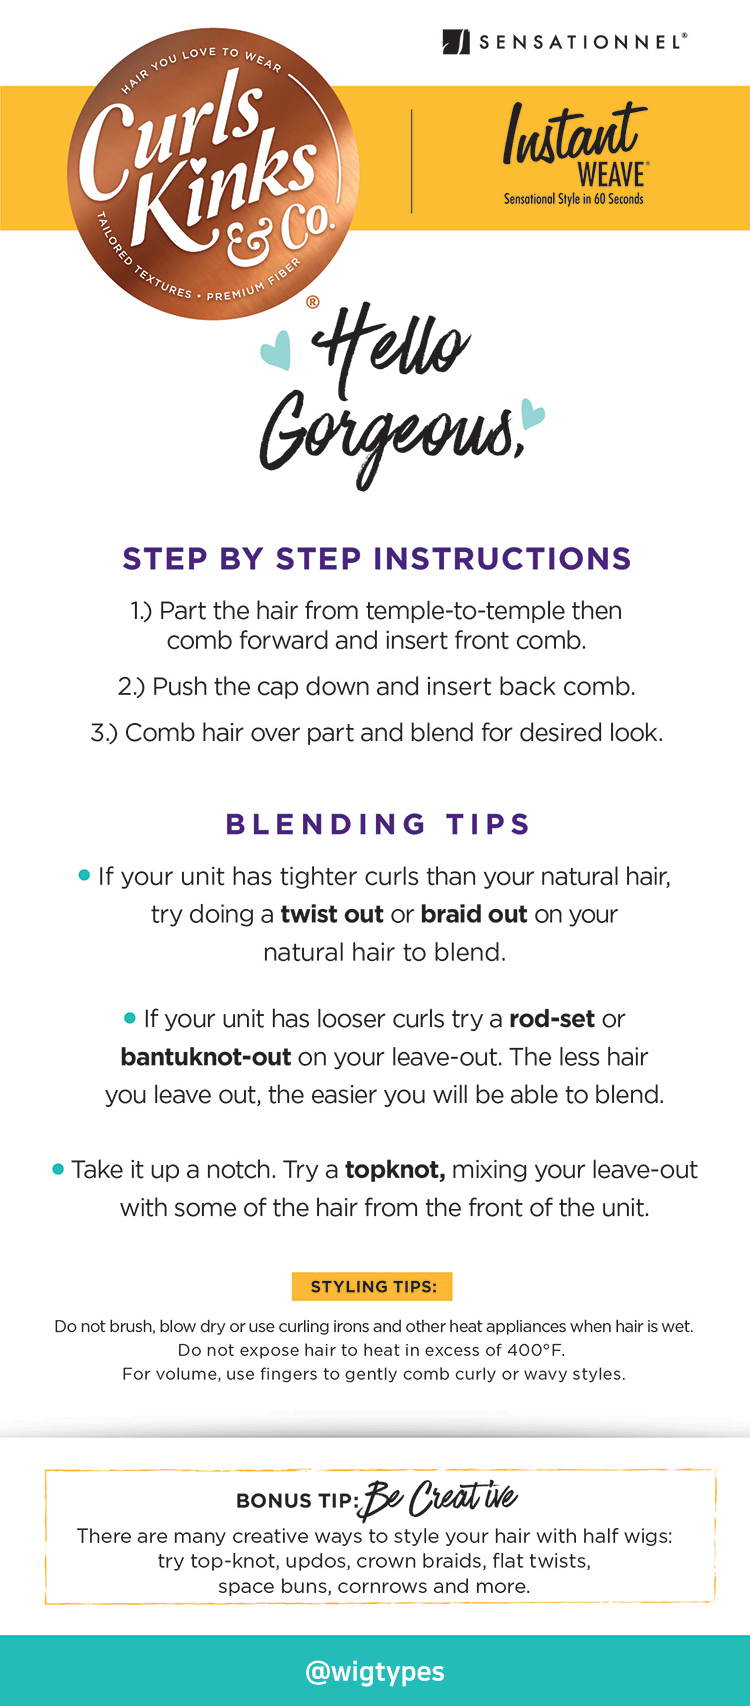 Sensationnel Curls Kinks and co Care guide